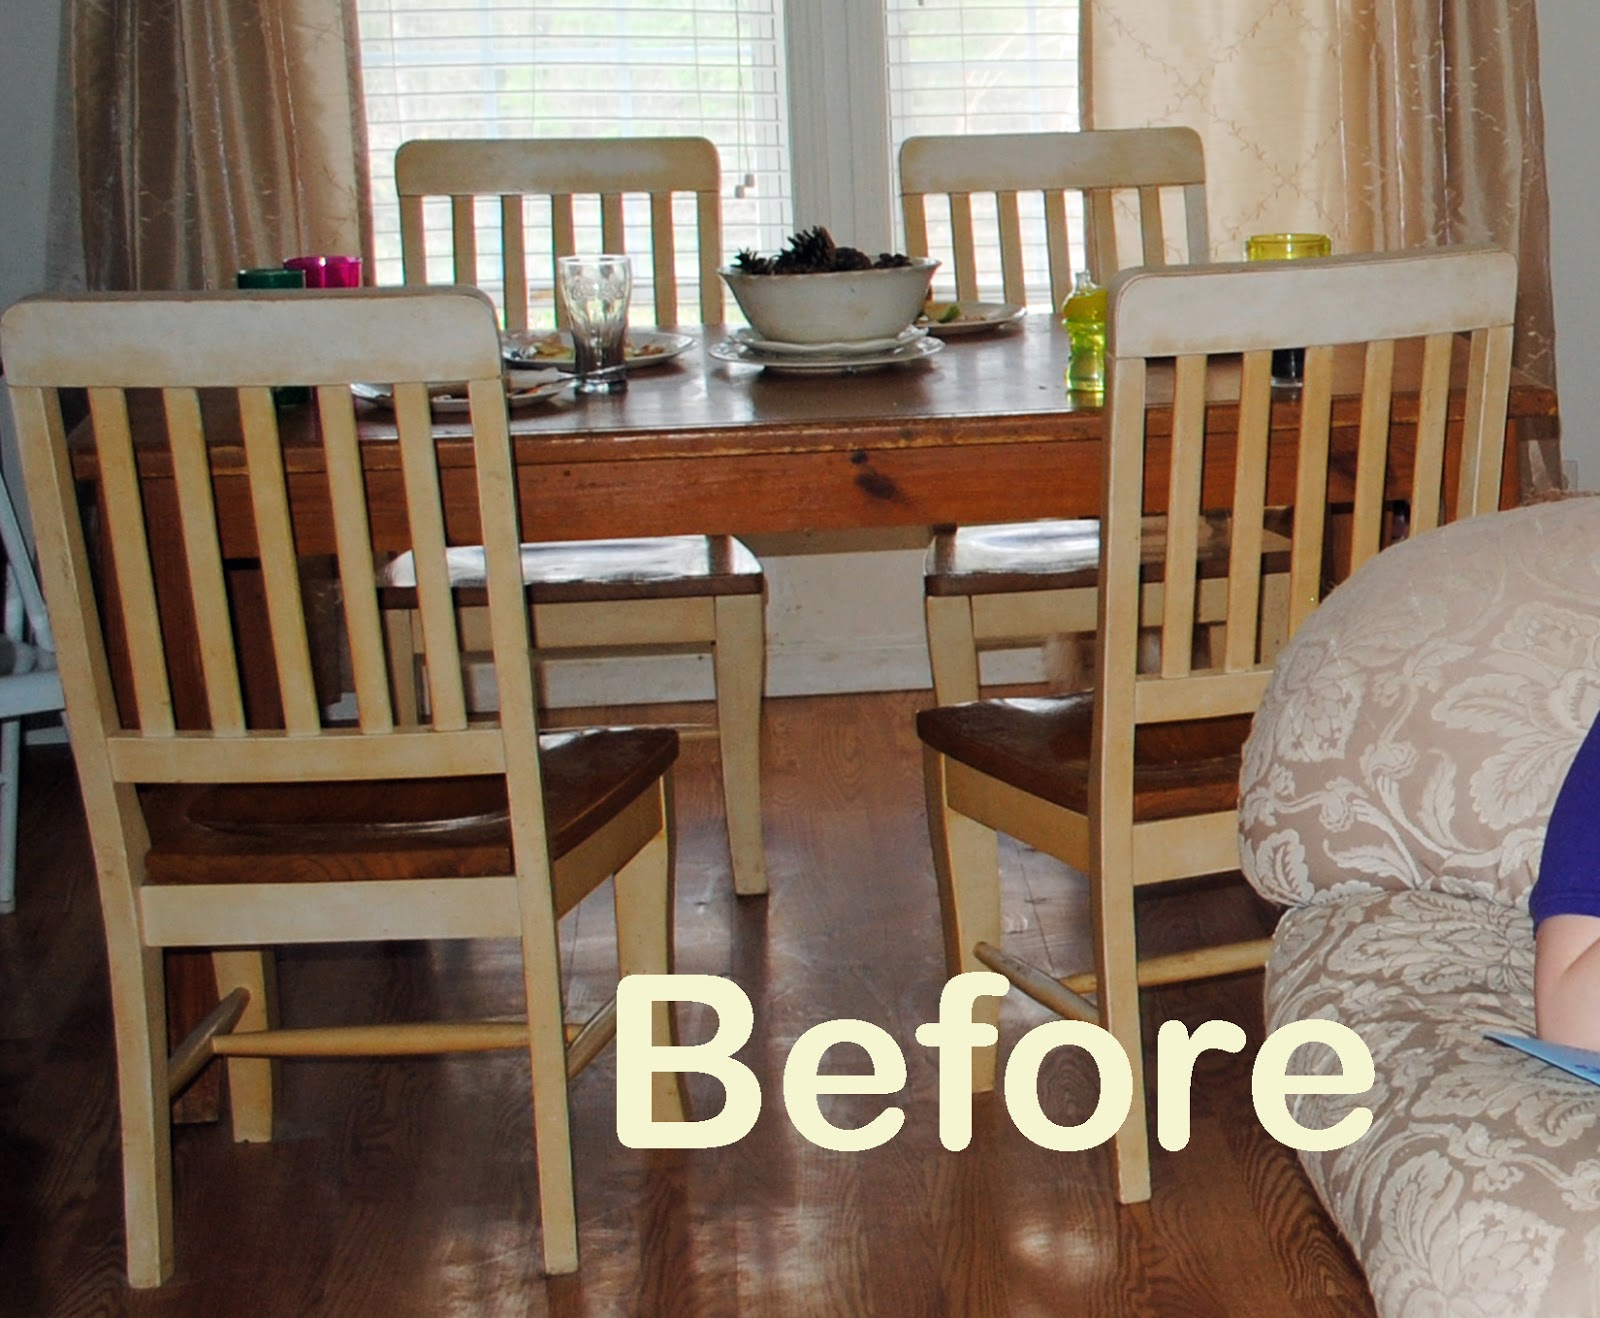 Refinish old knotty pine dining table redo kitchen table Refinish an Old  Knotty Pine Dining Table kitchen table Applaud Redo Kitchen Table Kitchen  Table  Redo Old Kitchen Table  refinish dining room table Before and  . Redo Old Kitchen Table. Home Design Ideas